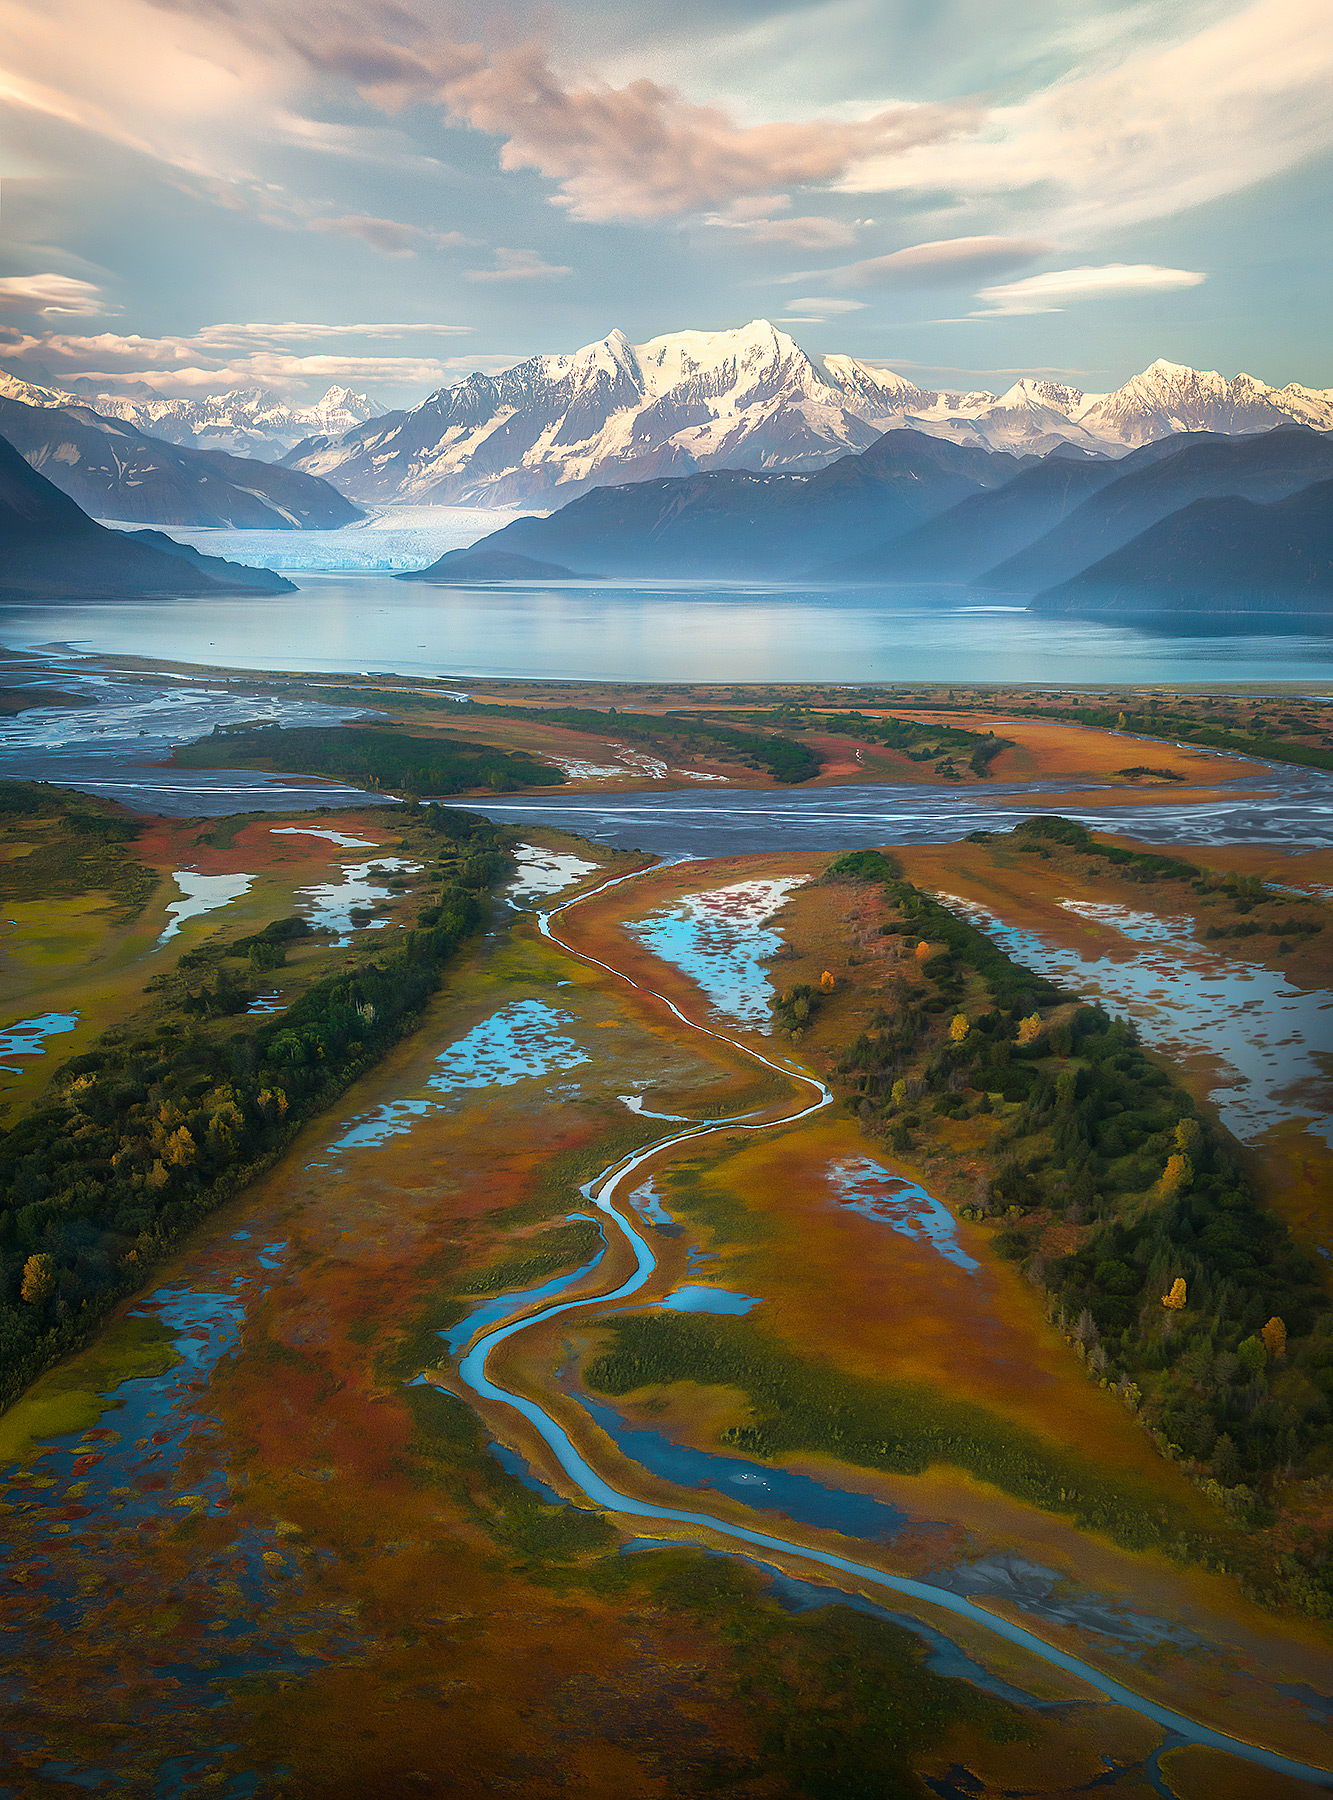 Recently glaciated lands on the shore of Yakutat Bay come back to life with a vibrant display of colors amidst waterways.